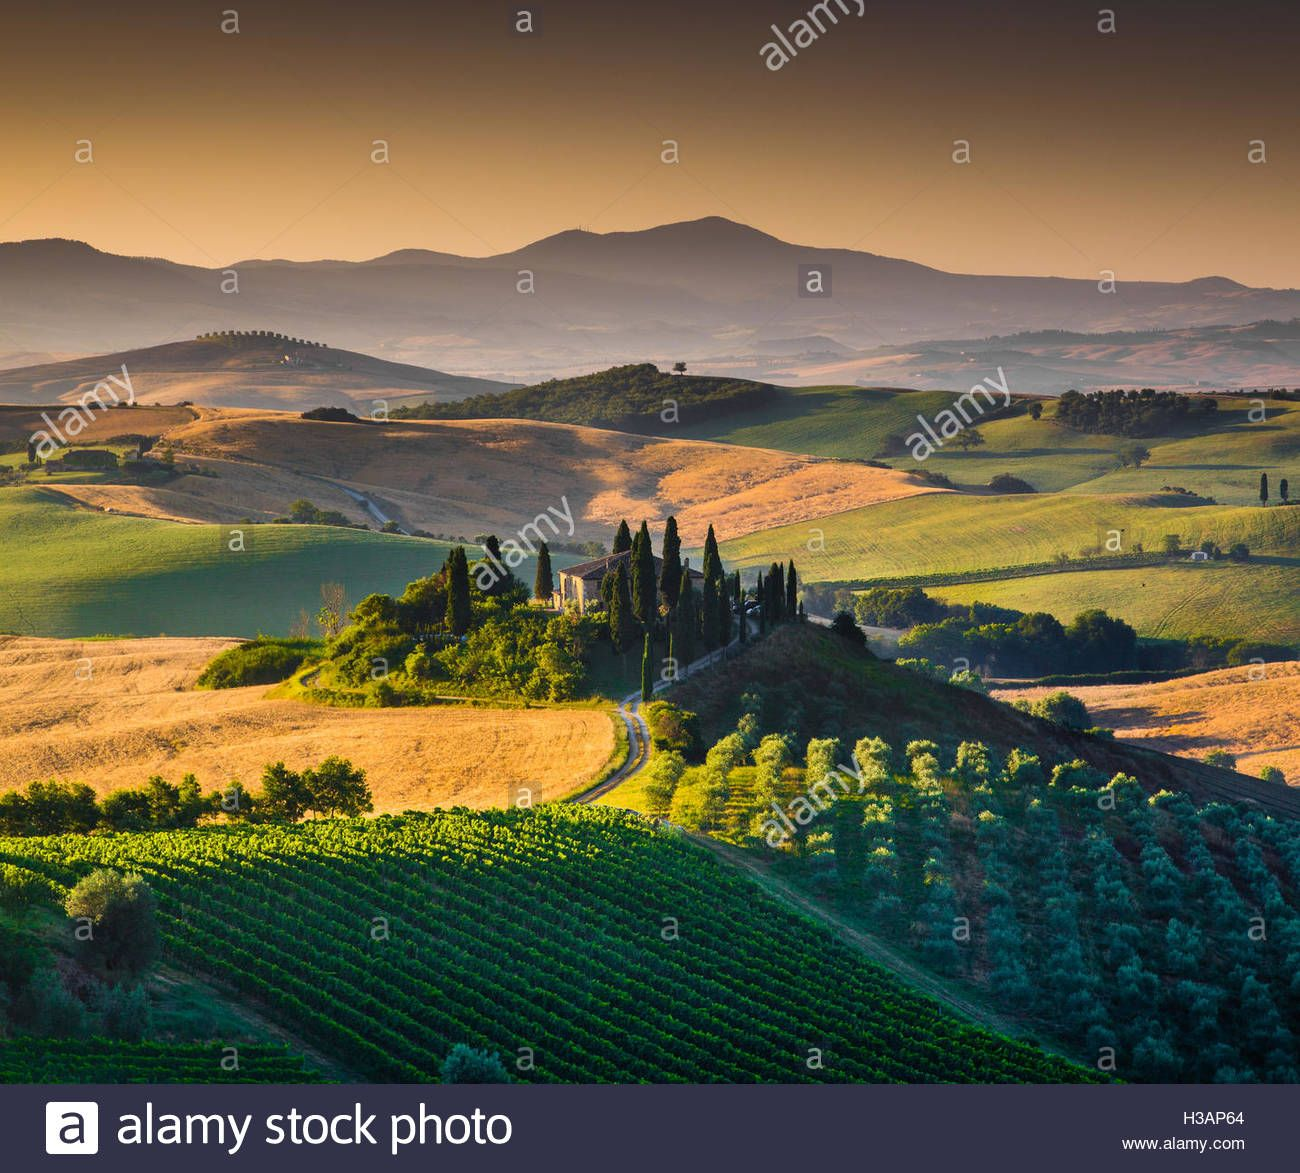 Download This Stock Image Scenic Tuscany Landscape With Rolling Hills And Valleys In Golden Morning Light Val D Orcia Italy H3ap64 From Alamy Italia Campo